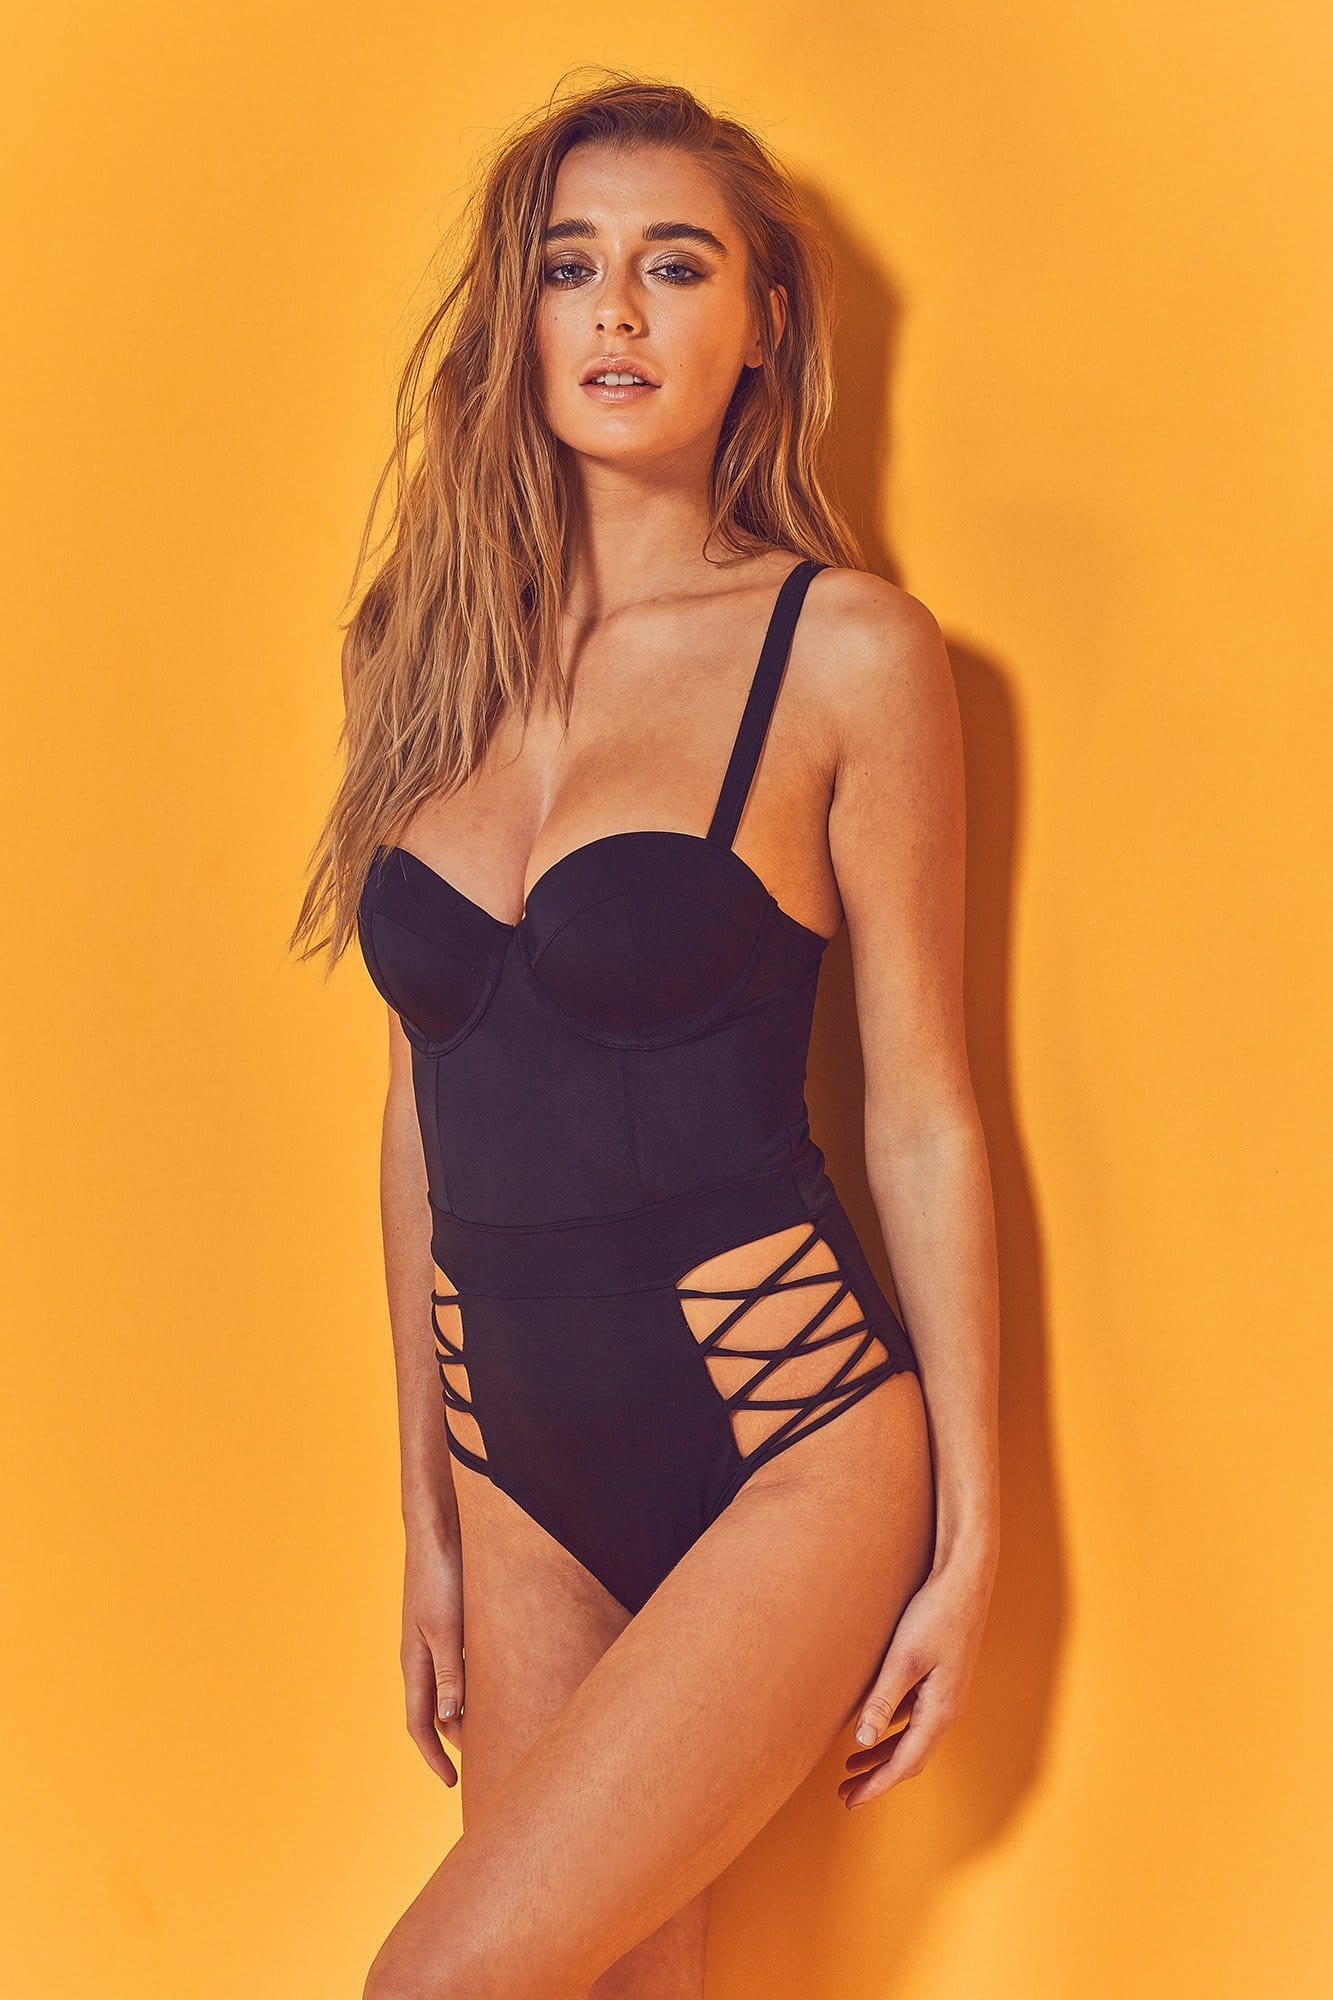 a32740537ca Wolf and whistle underwired swimsuit · wolf & whistle cup sized swimsuit ...